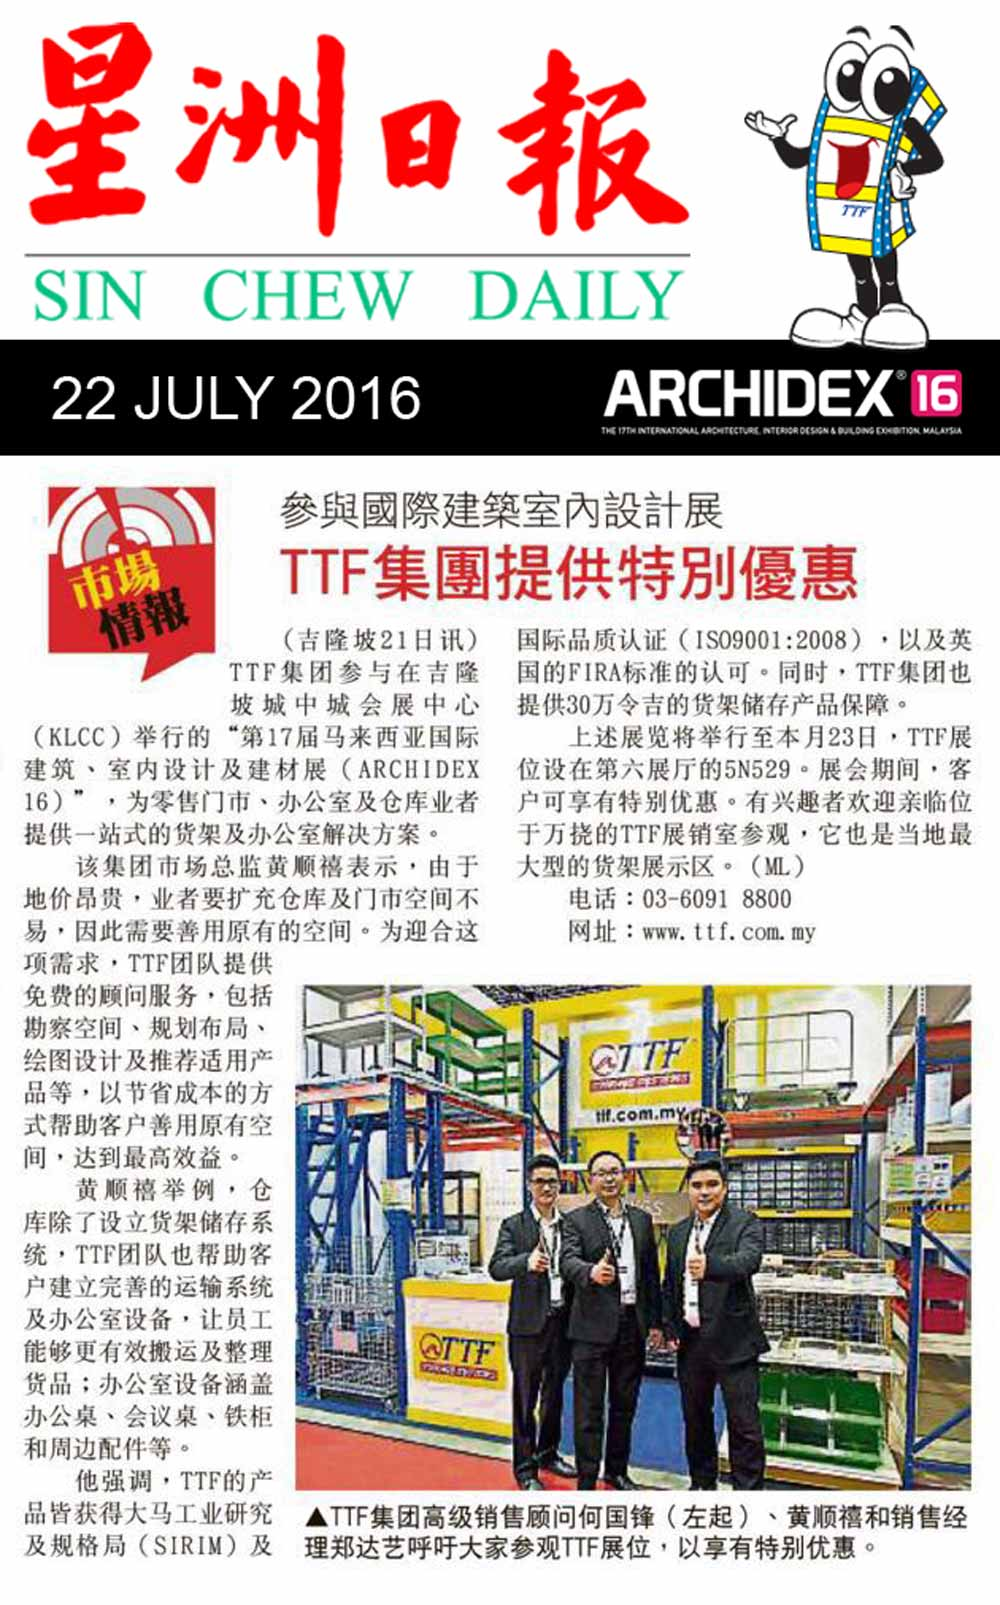 News from Sin Chew Daily Newspaper - 22 July 2016, come visit our Booth No 5N529 at Archidex Exhibition (20-23 July 2016, 10am-7pm)